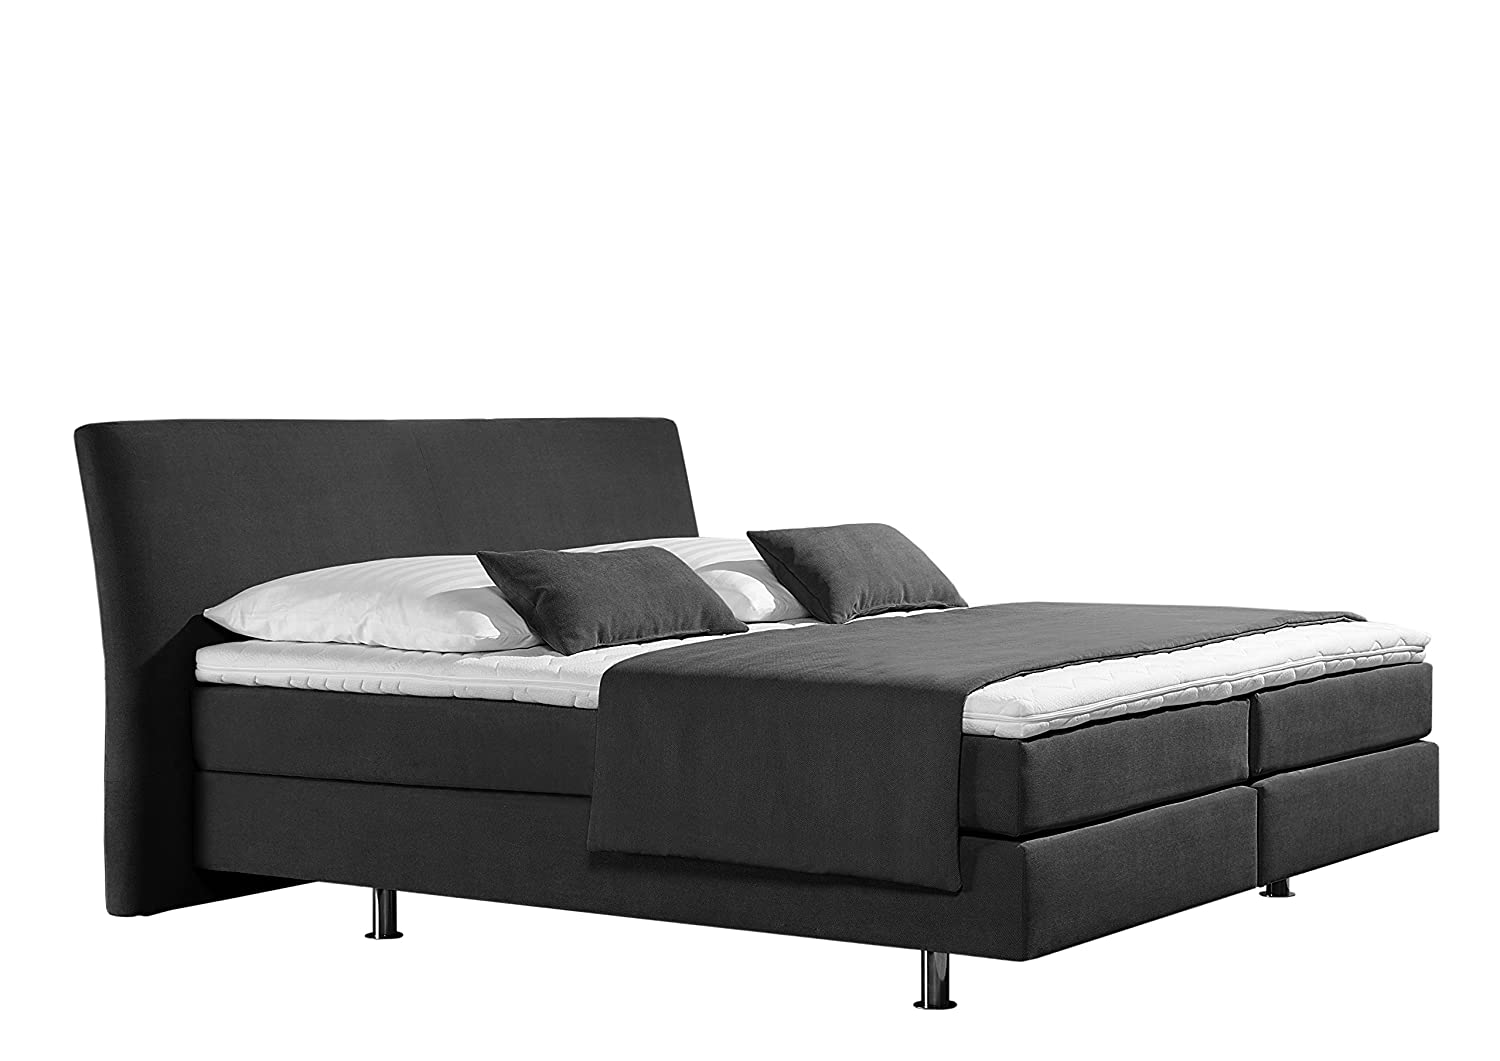 Maintal Betten 237372-4174 Box springbett Club 160 x 200 cm, Strukturstoff anthrazit